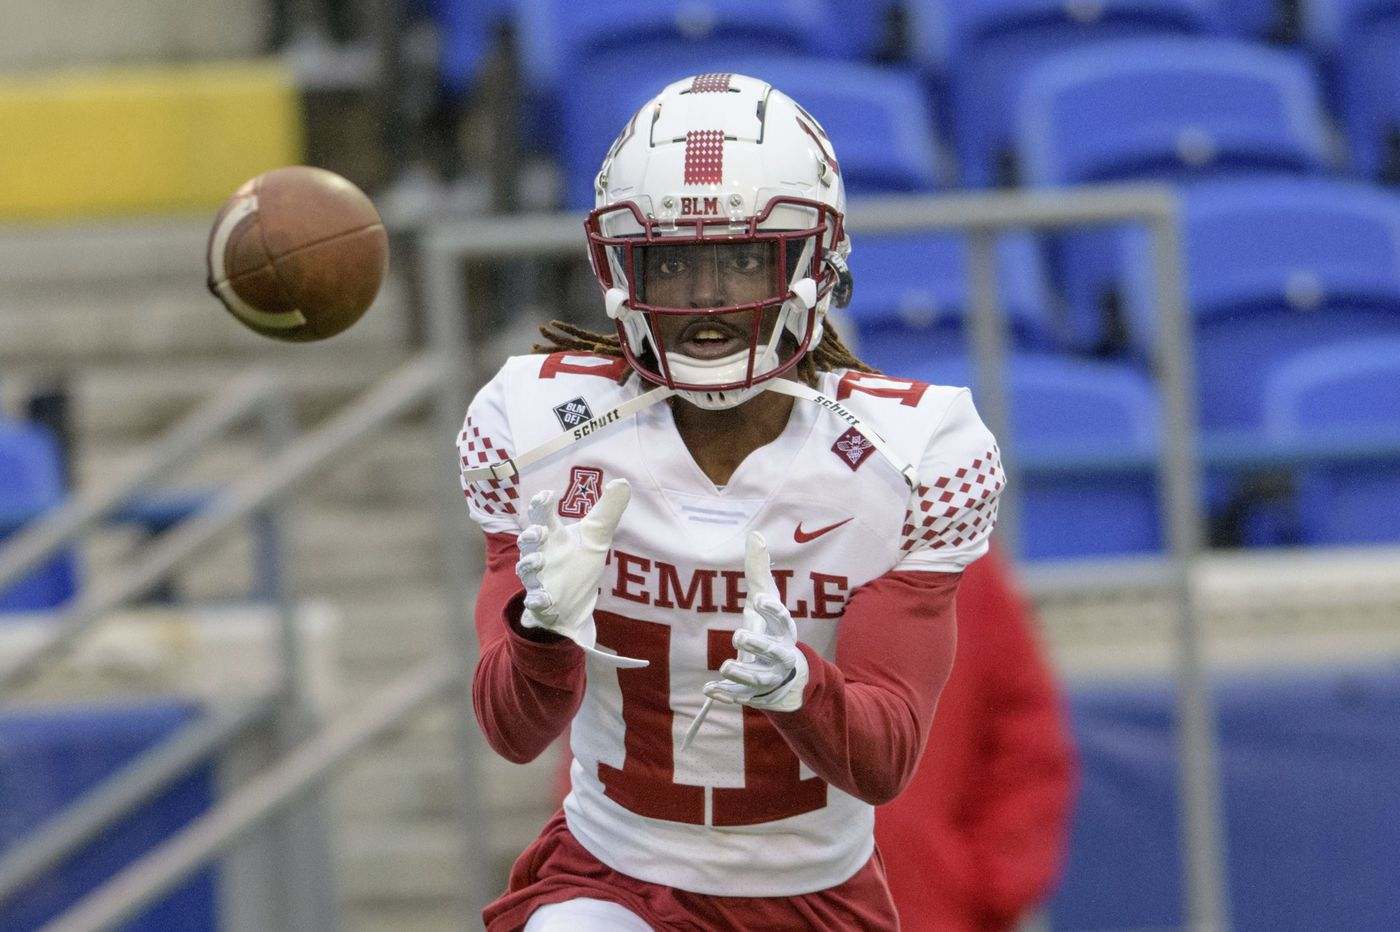 Tulane looks like a breeze for Temple, but don't count on it